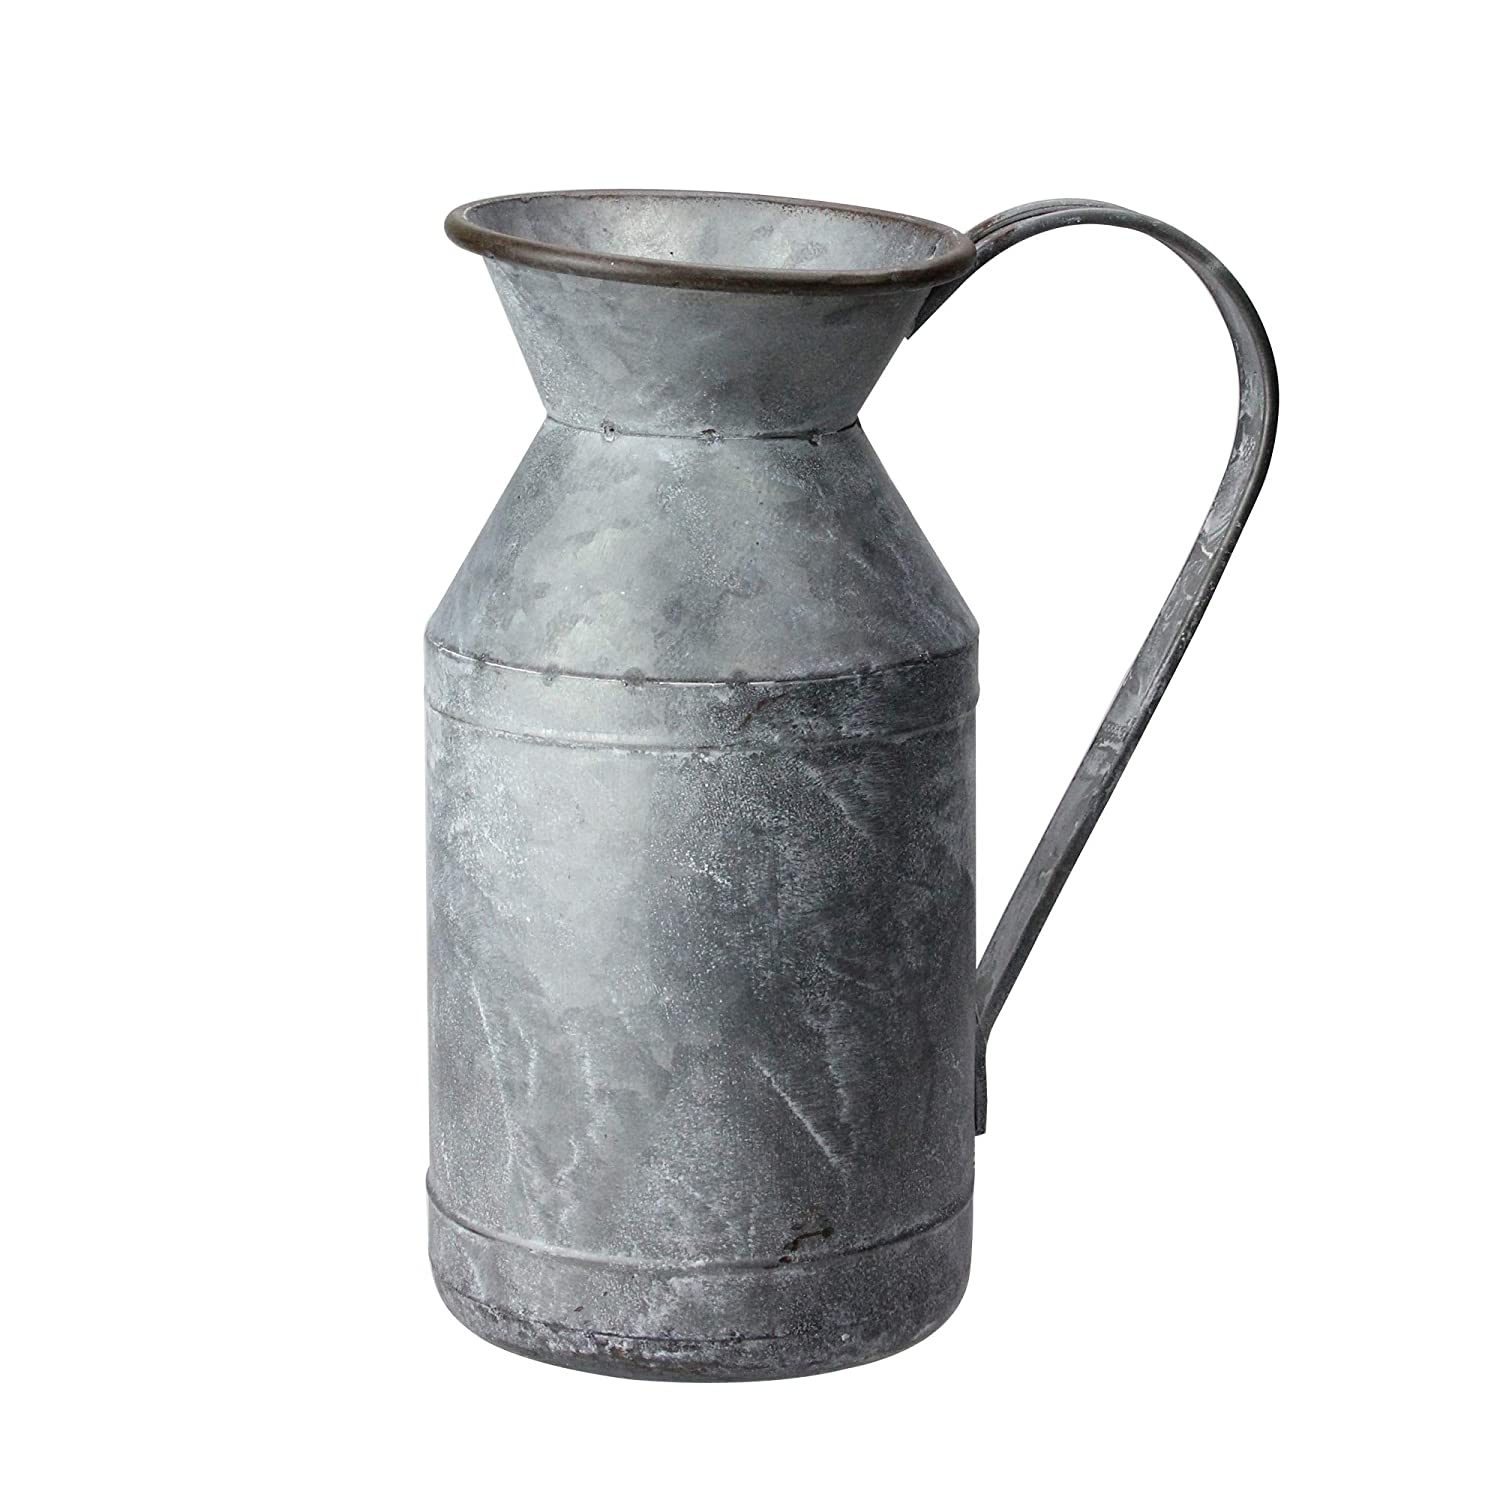 RAZ Imports Rustic Galvanized 11 inch Iron Metal Decorative Farmhouse Pitcher